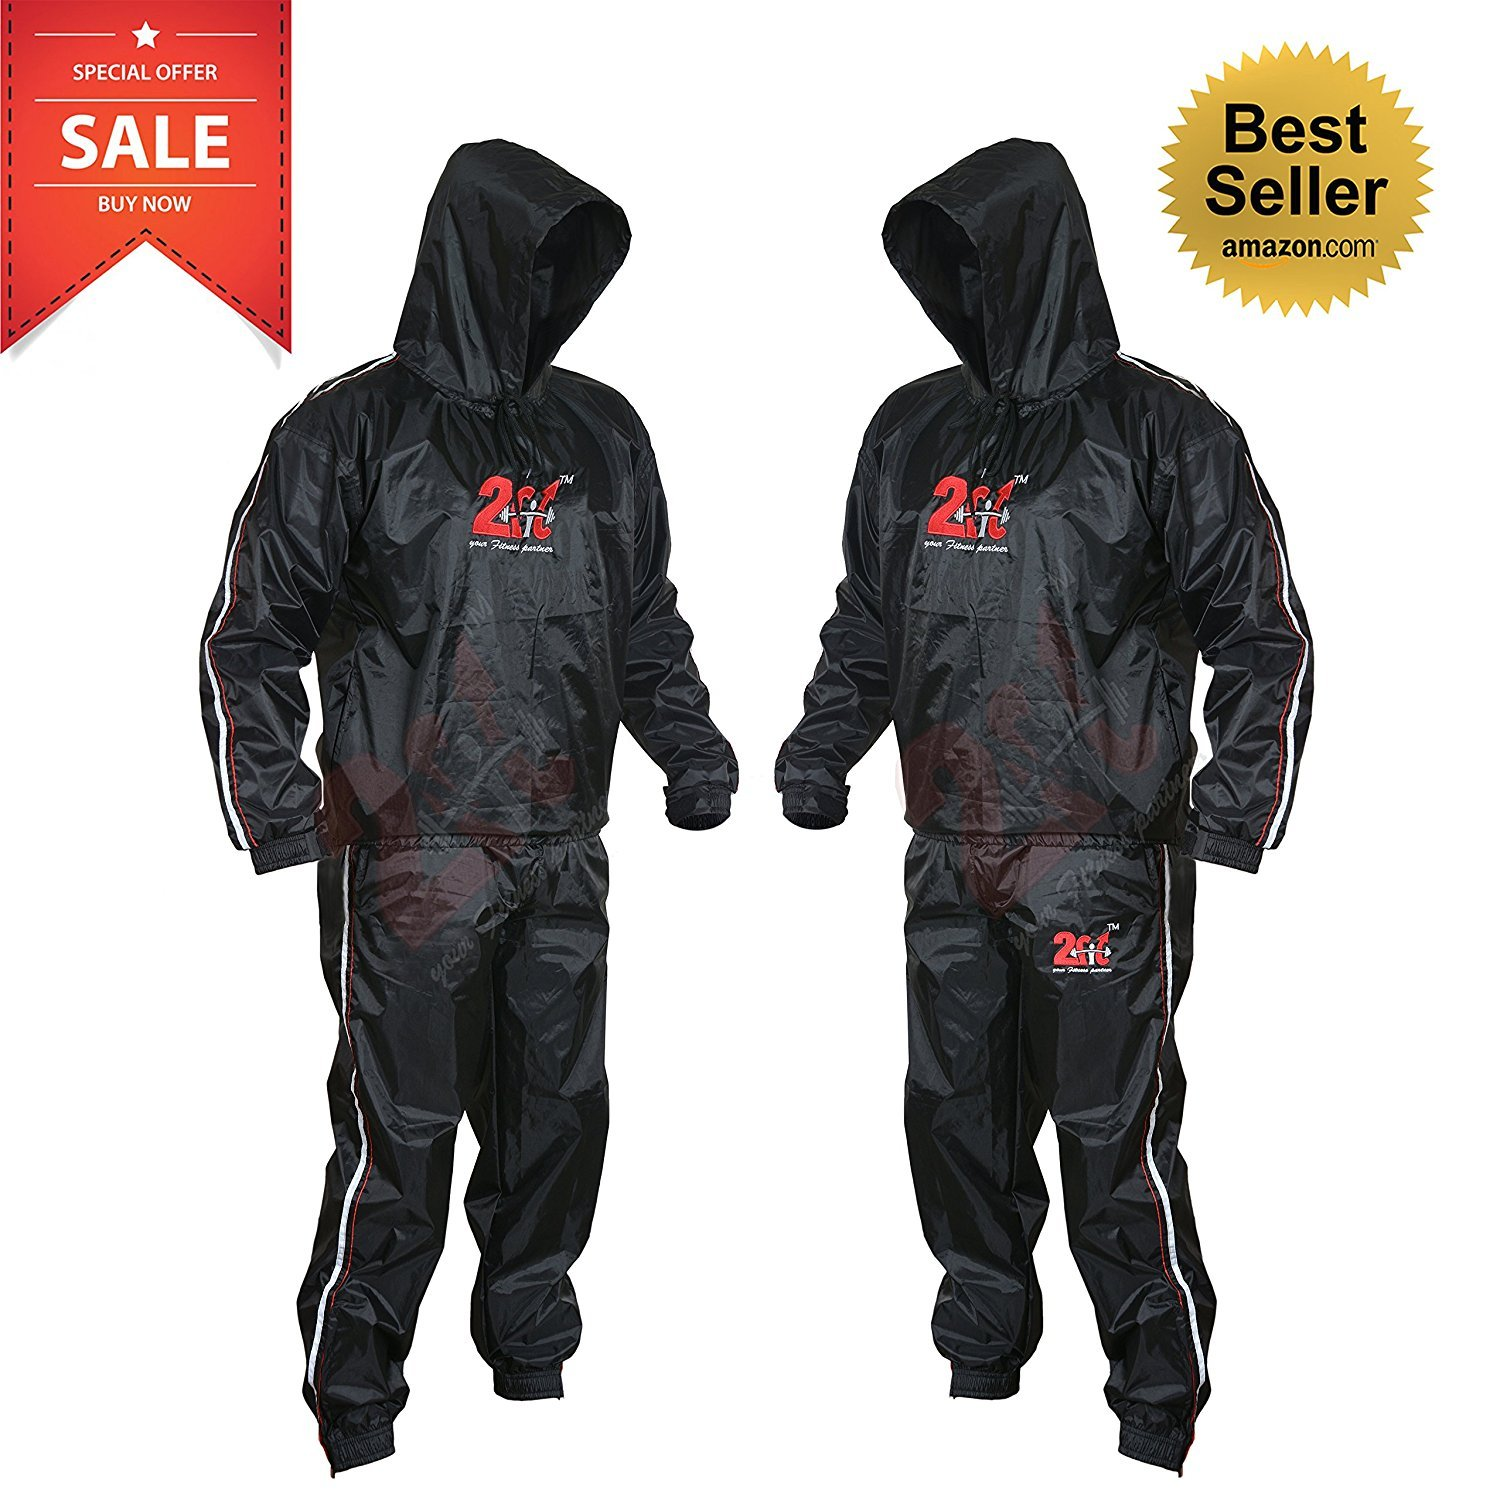 2Fit® Heavy Duty Sweat Suit Sauna Exercise Gym Suit Fitness, Weight Loss, AntiRip (7XL)